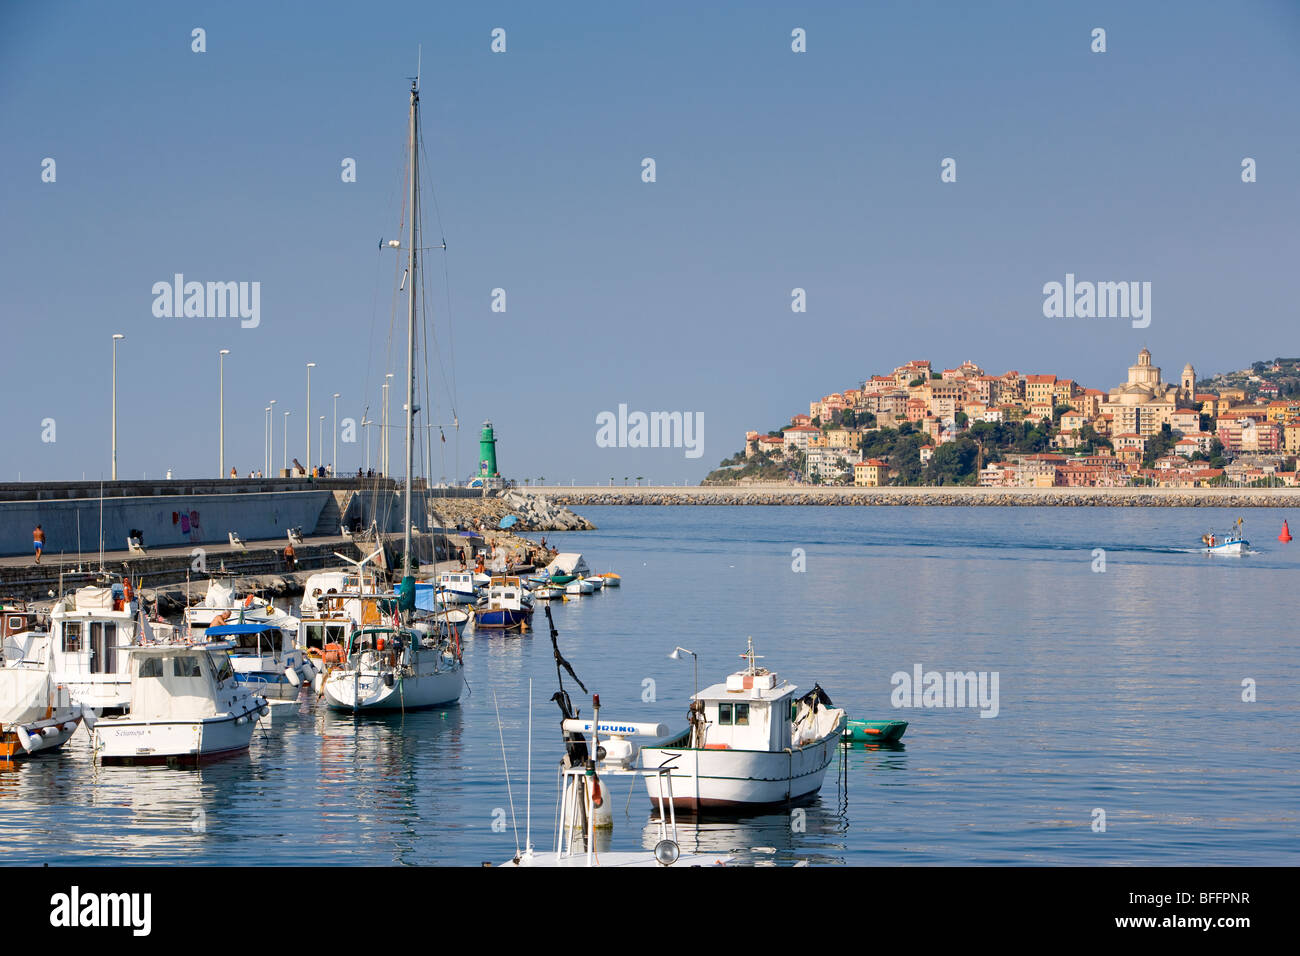 Harbour, boats and Imperia, liguria, Italy - Stock Image